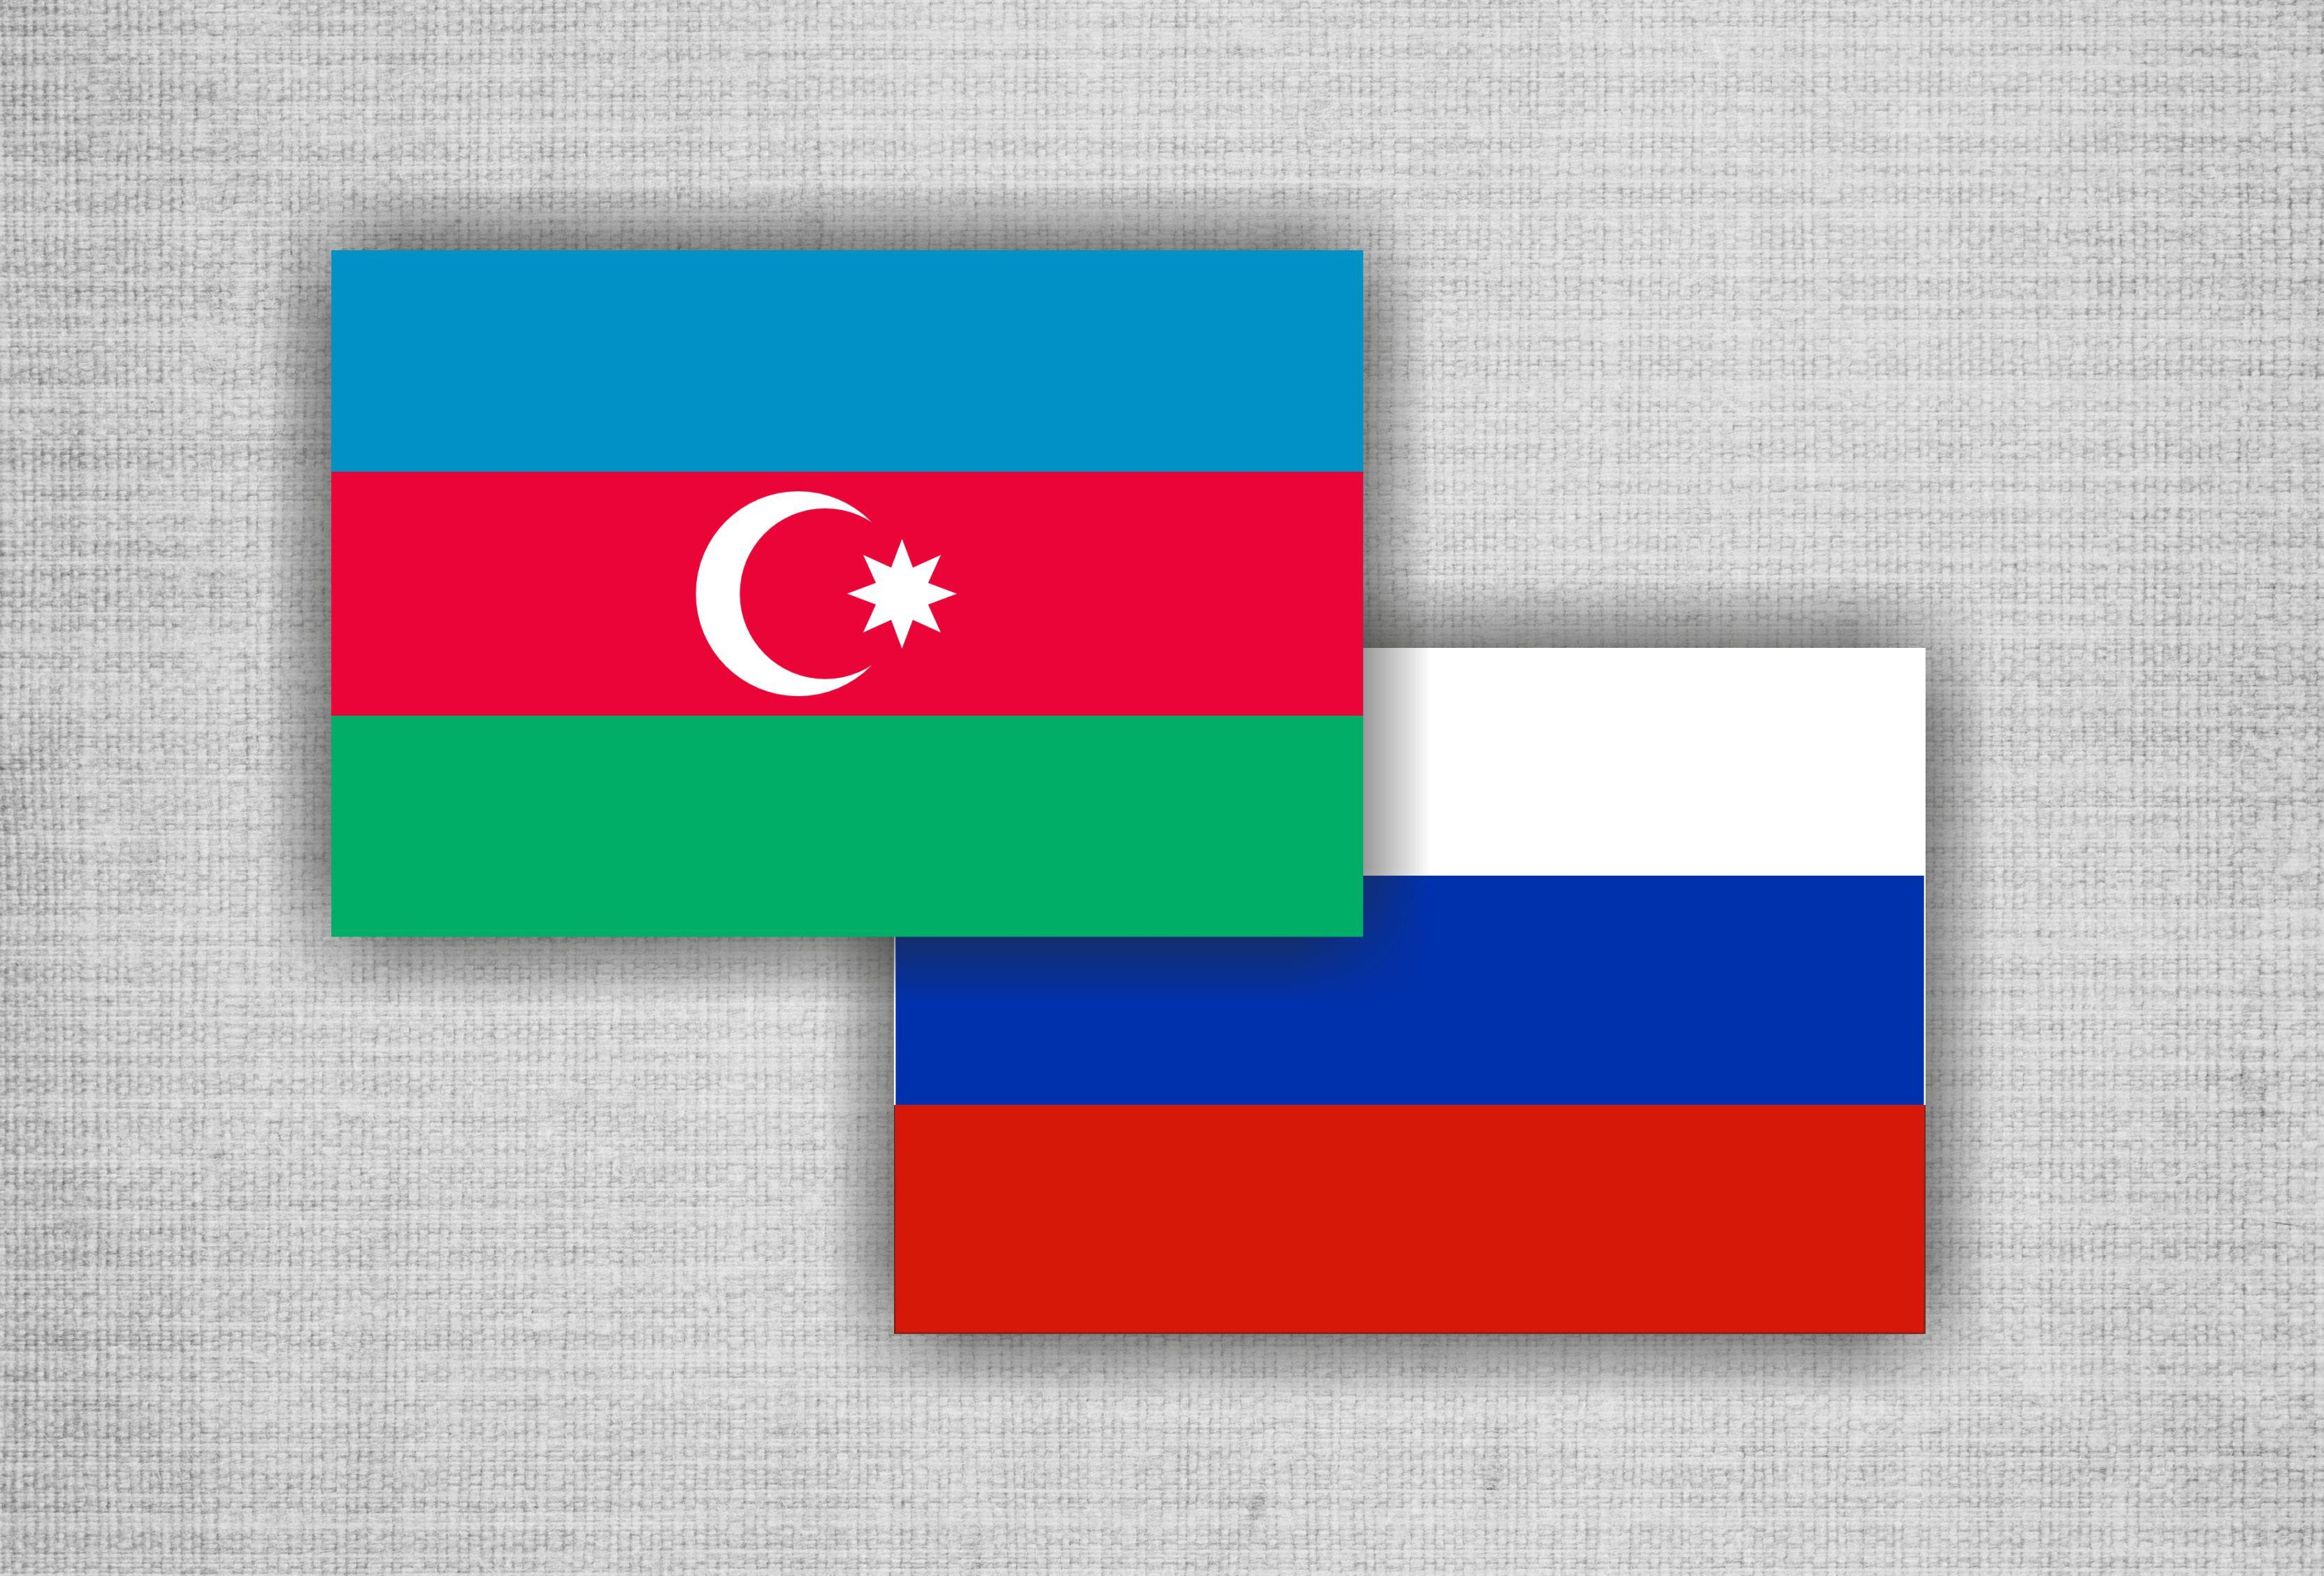 Baku to host photo exhibition 'Russia - Azerbaijan: 2015'